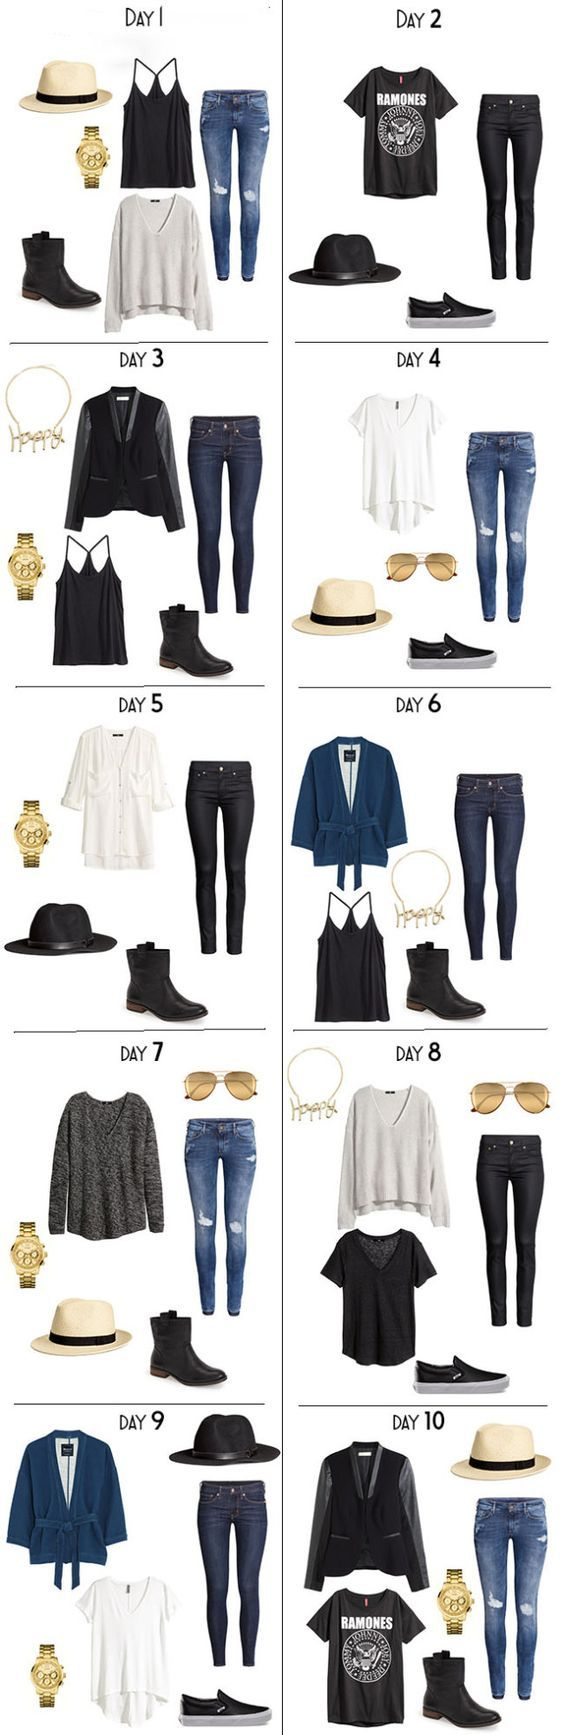 Packing List for Europe - 20 Outfits in just one Carry On! #vacationlooks